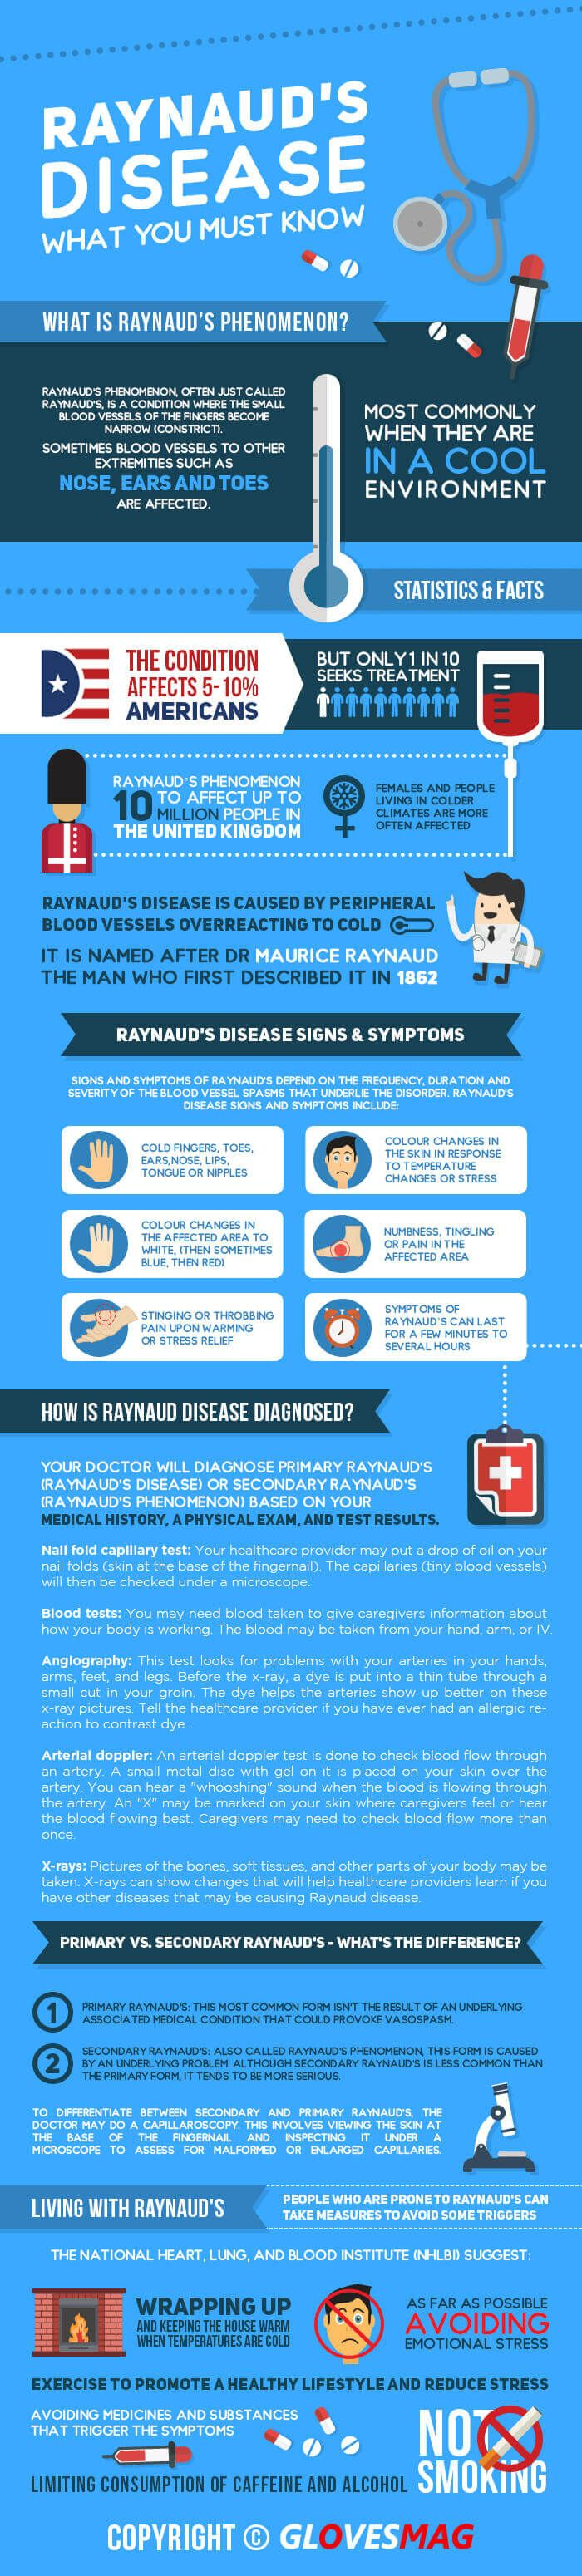 Raynauds disease:  what you must know inforgaphic